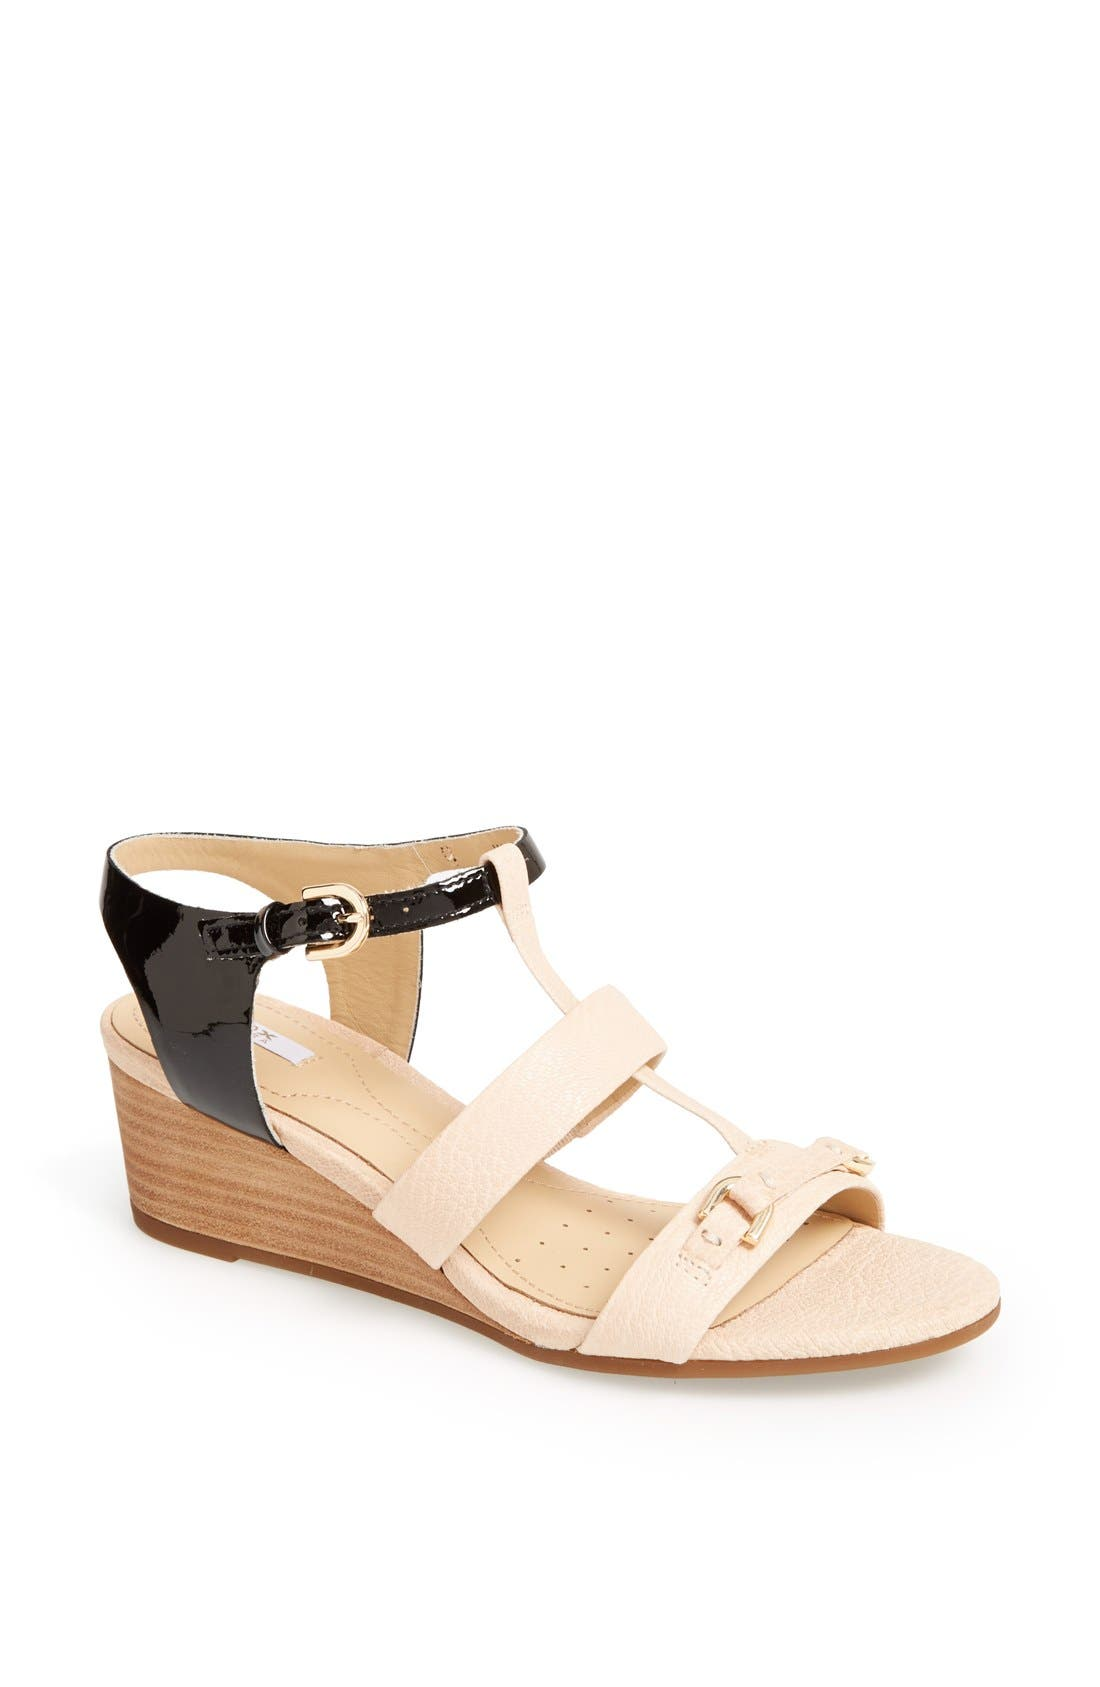 Main Image - Geox 'Lupe' Leather Sandal